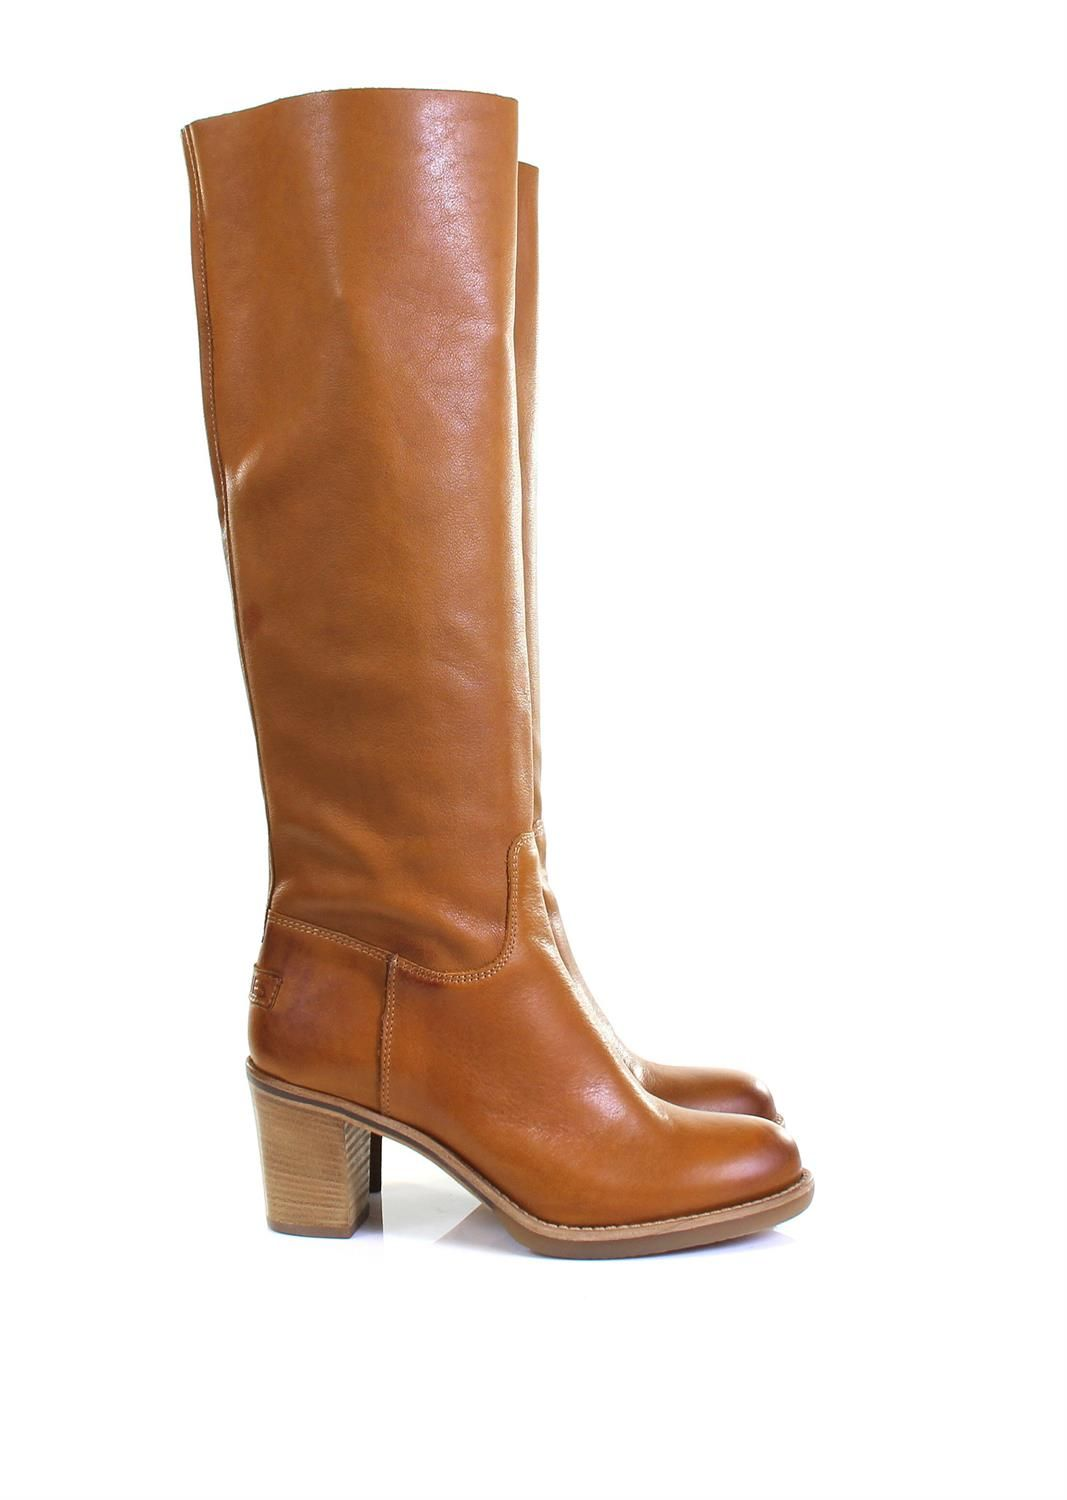 Shabbies Amsterdam Bottines cognac ZNFwVXZf